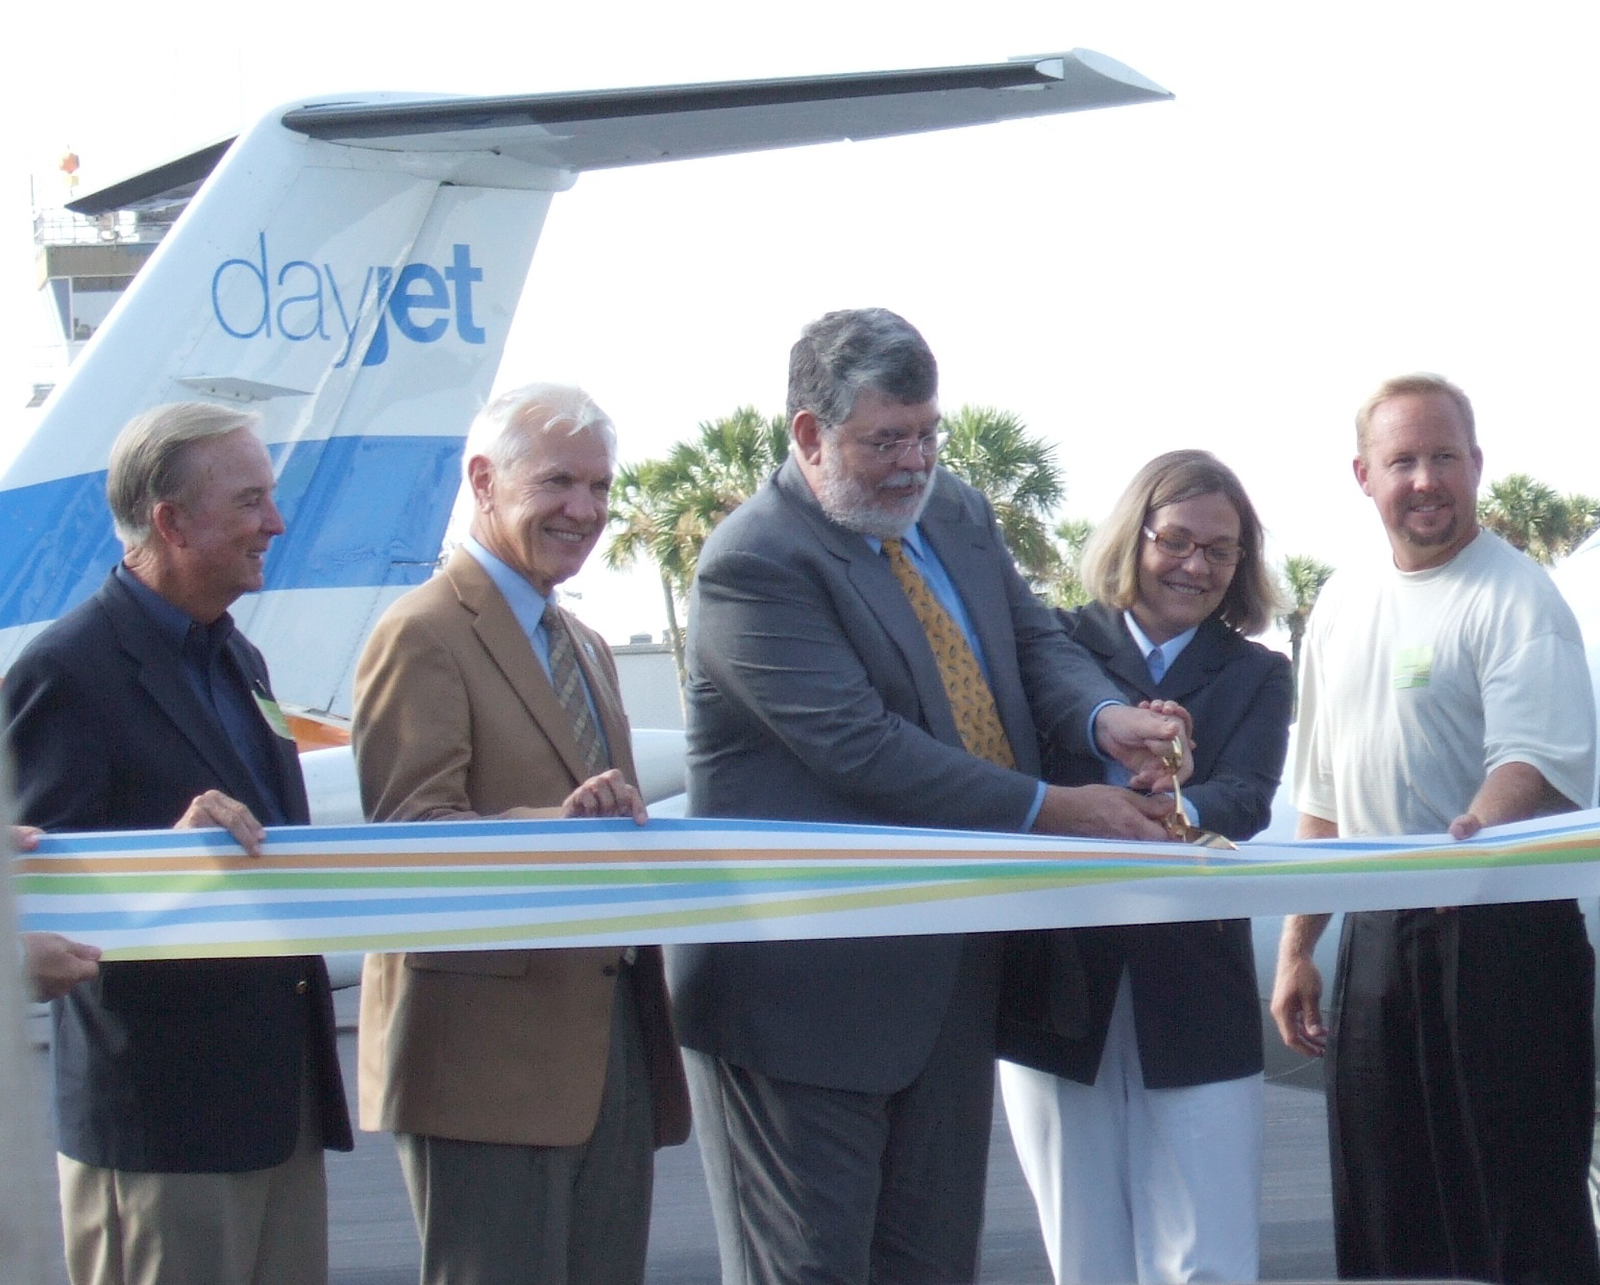 DayJet Launches First GA Per-Seat Jet Service